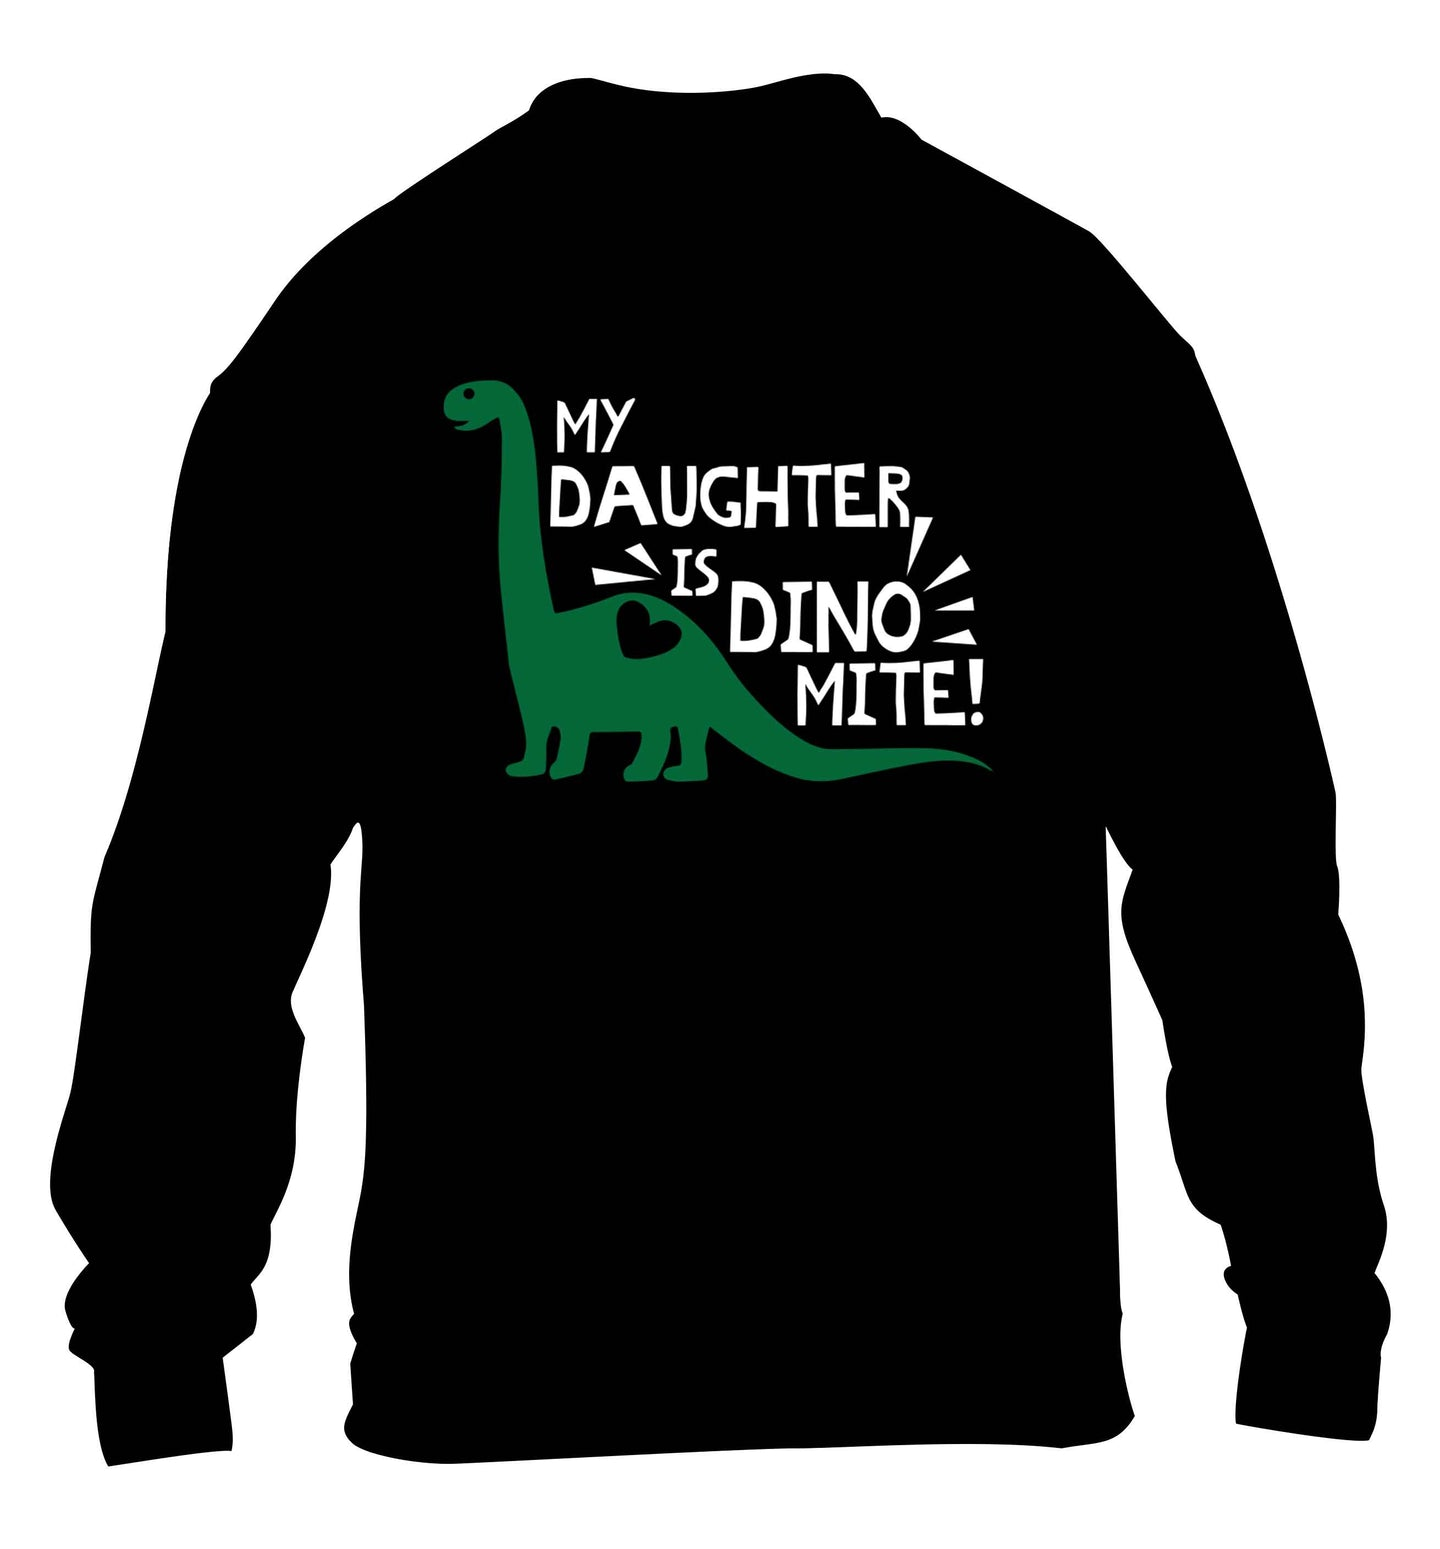 My daughter is dinomite! children's black sweater 12-13 Years